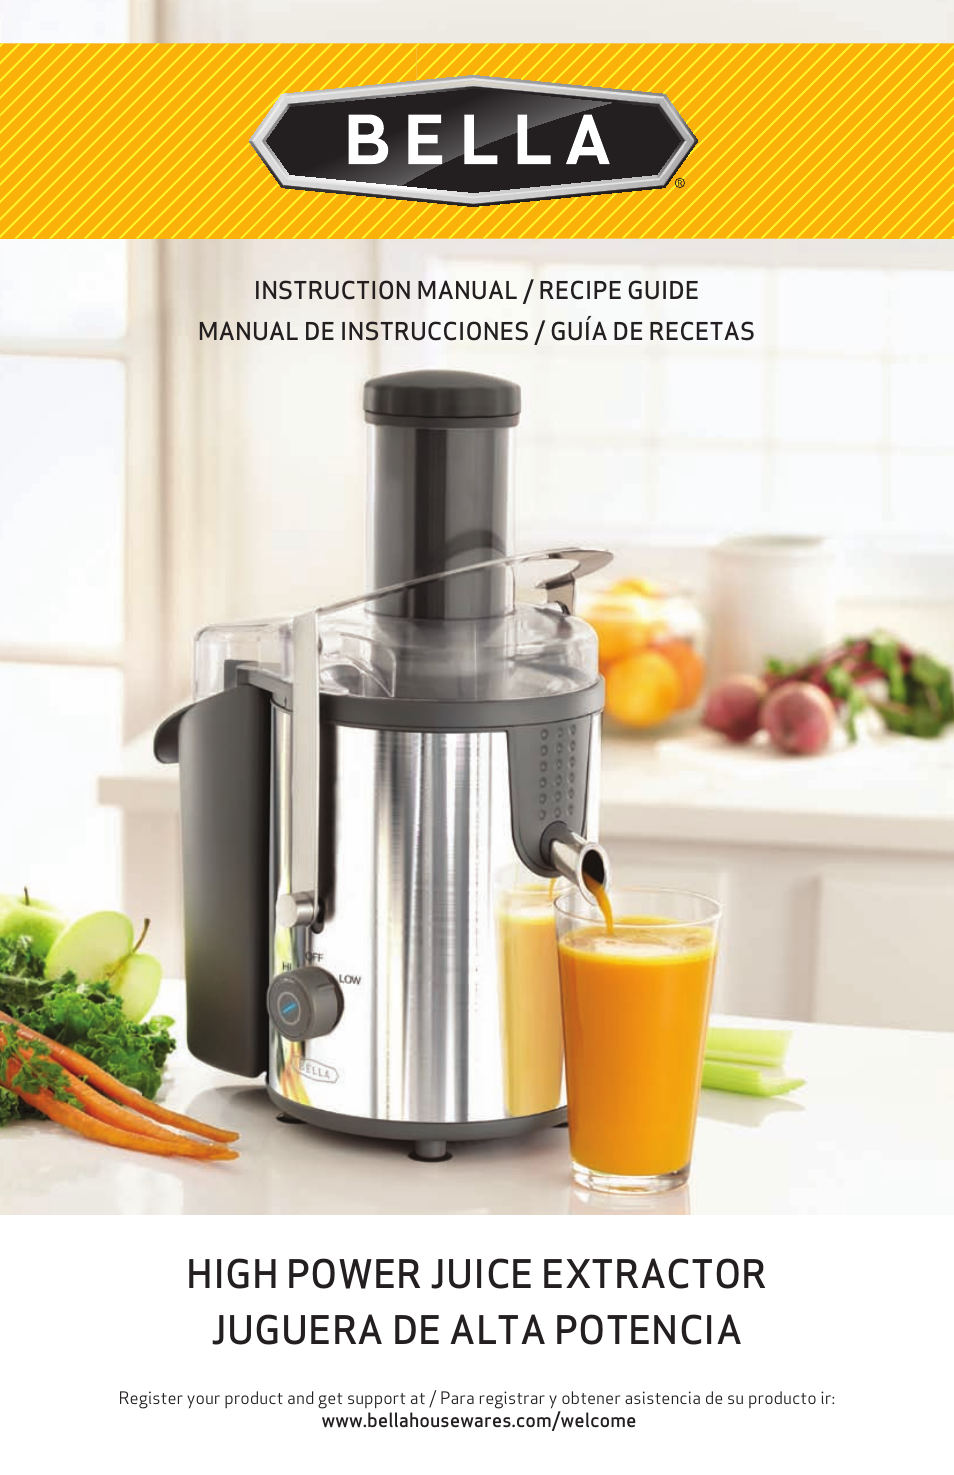 bella 13694 high power juicer user manual 36 pages rh manualsdir com GE Juice Extractor Model 106816 GE Juicer Walmart